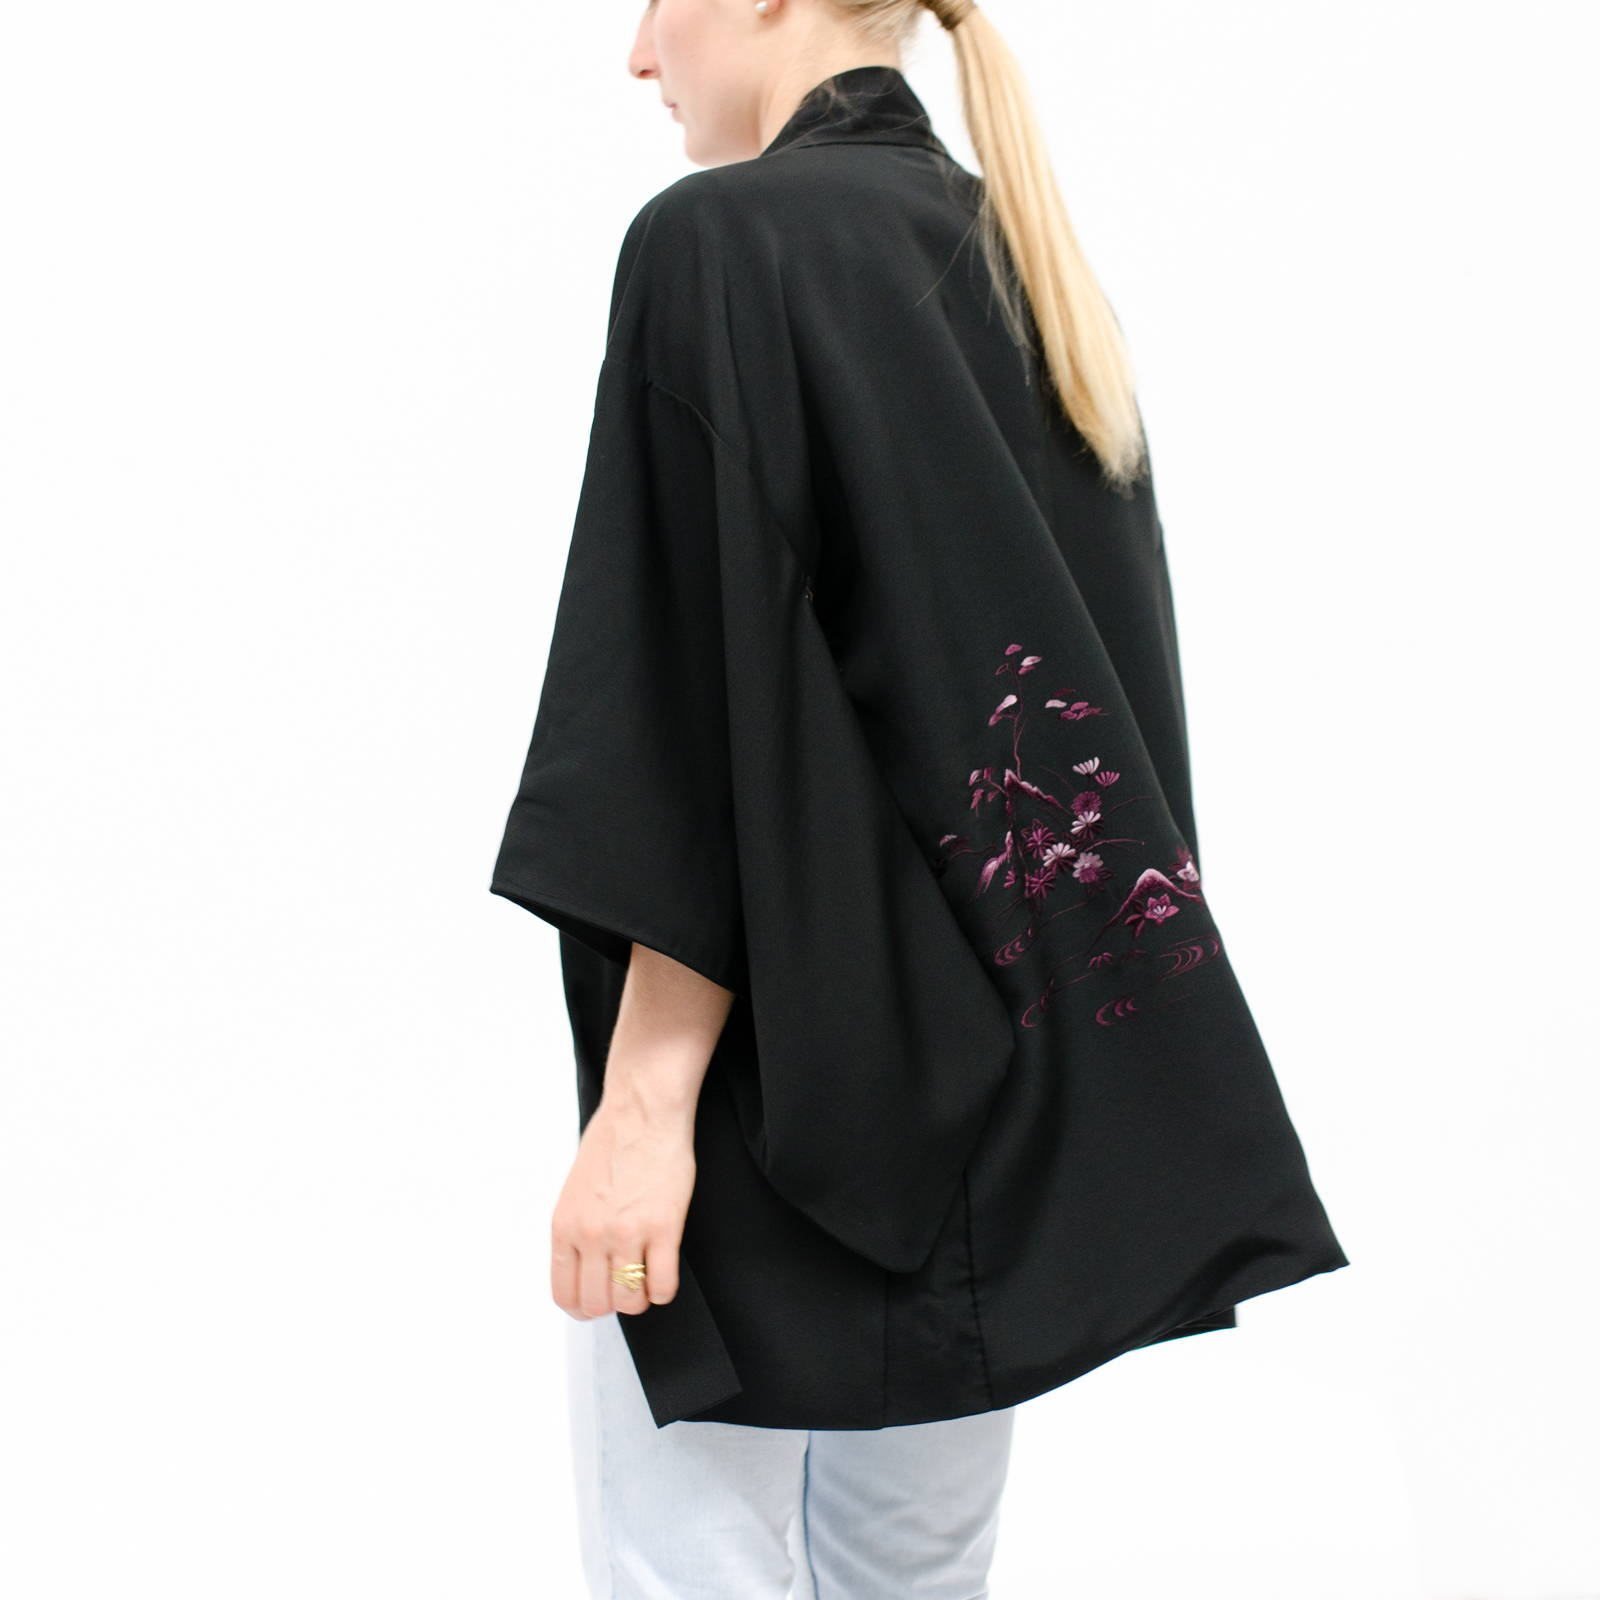 Silk Kimono - Haori - Black with Floral Embroidery